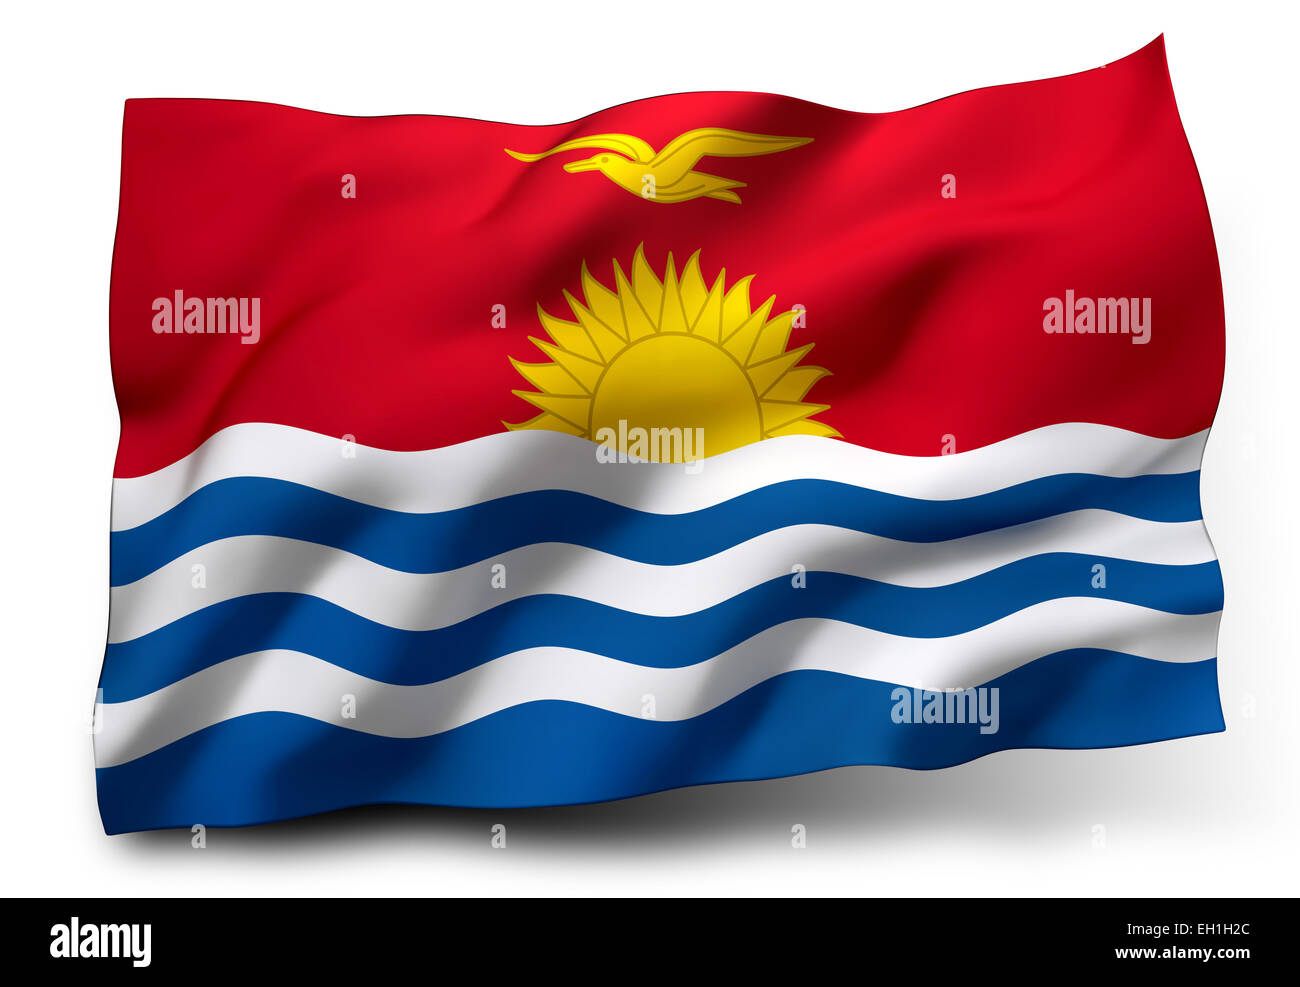 Waving flag of Kiribati isolated on white background - Stock Image